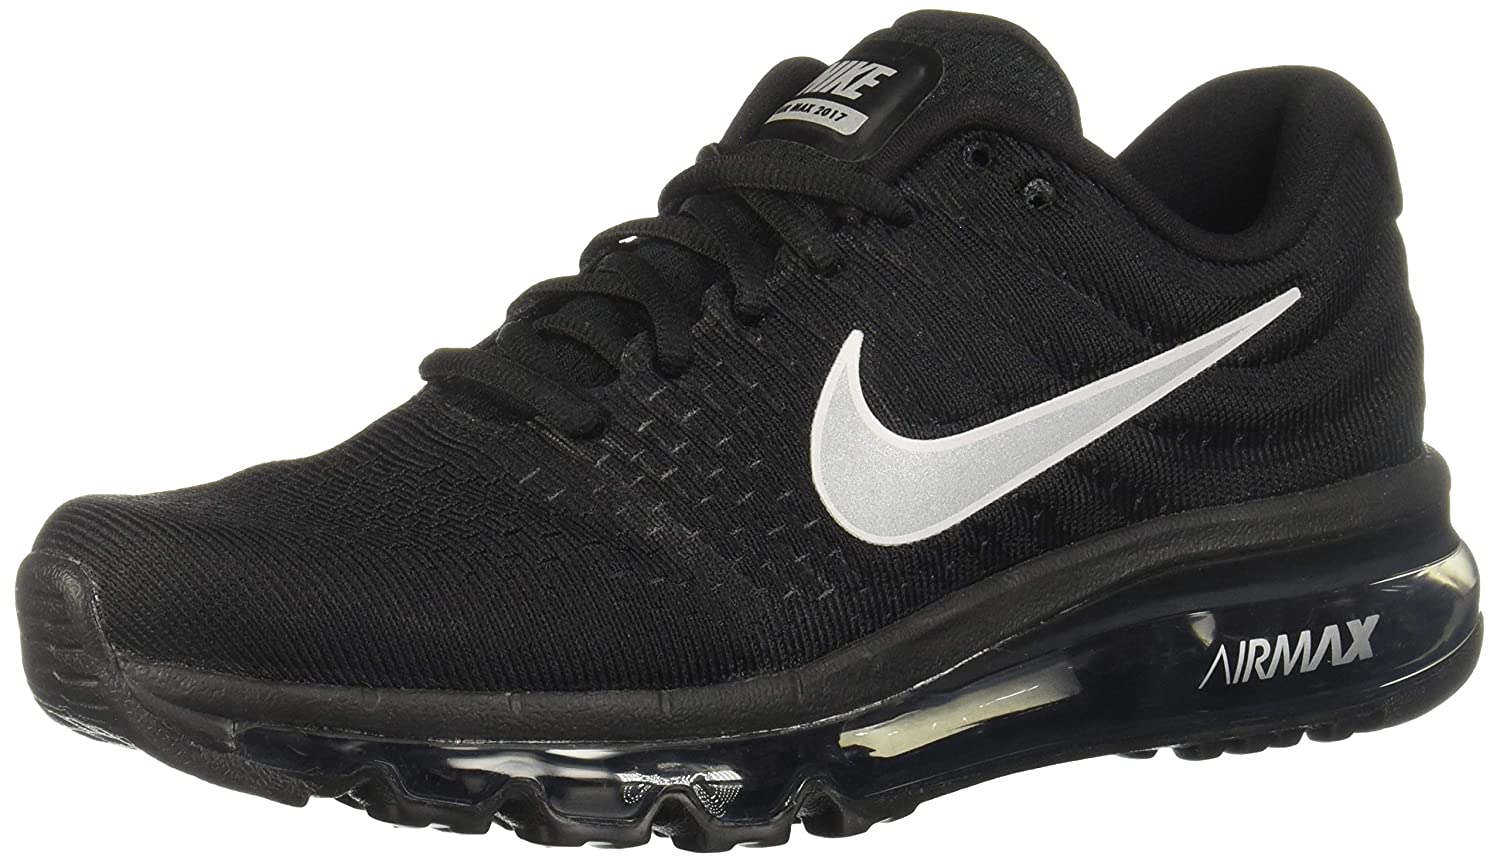 on sale 0f900 88a93 Amazon.com   Nike Womens Air Max 2017 Running Shoes Black White Anthracite  849560-001 Size 10   Road Running